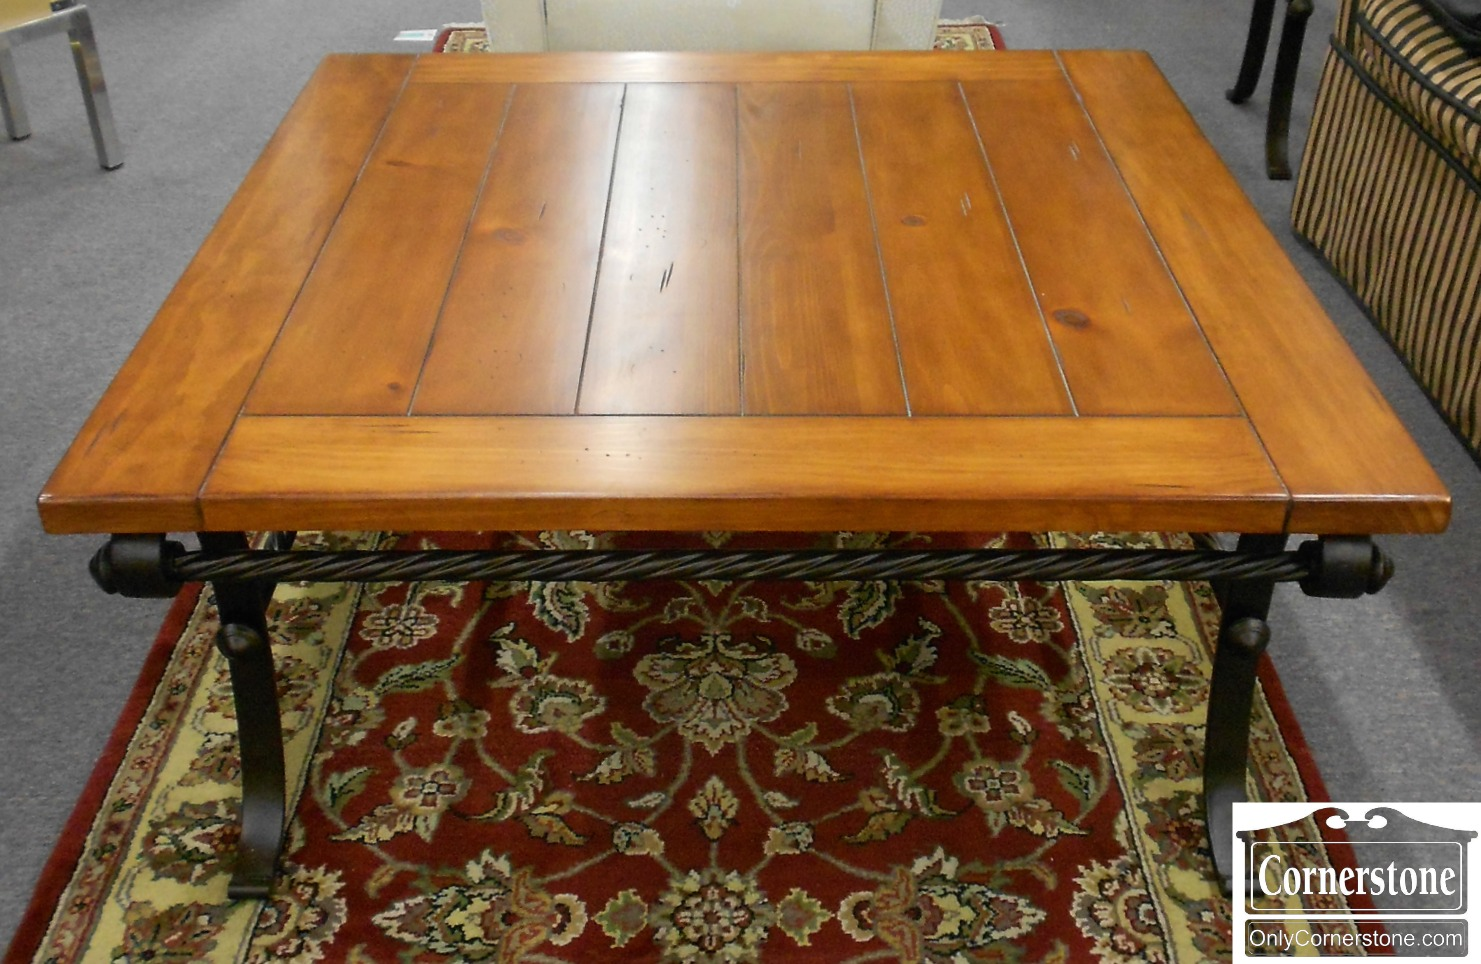 5208-957 Square Pine Coffee Table Cocktail Table with Metal Base